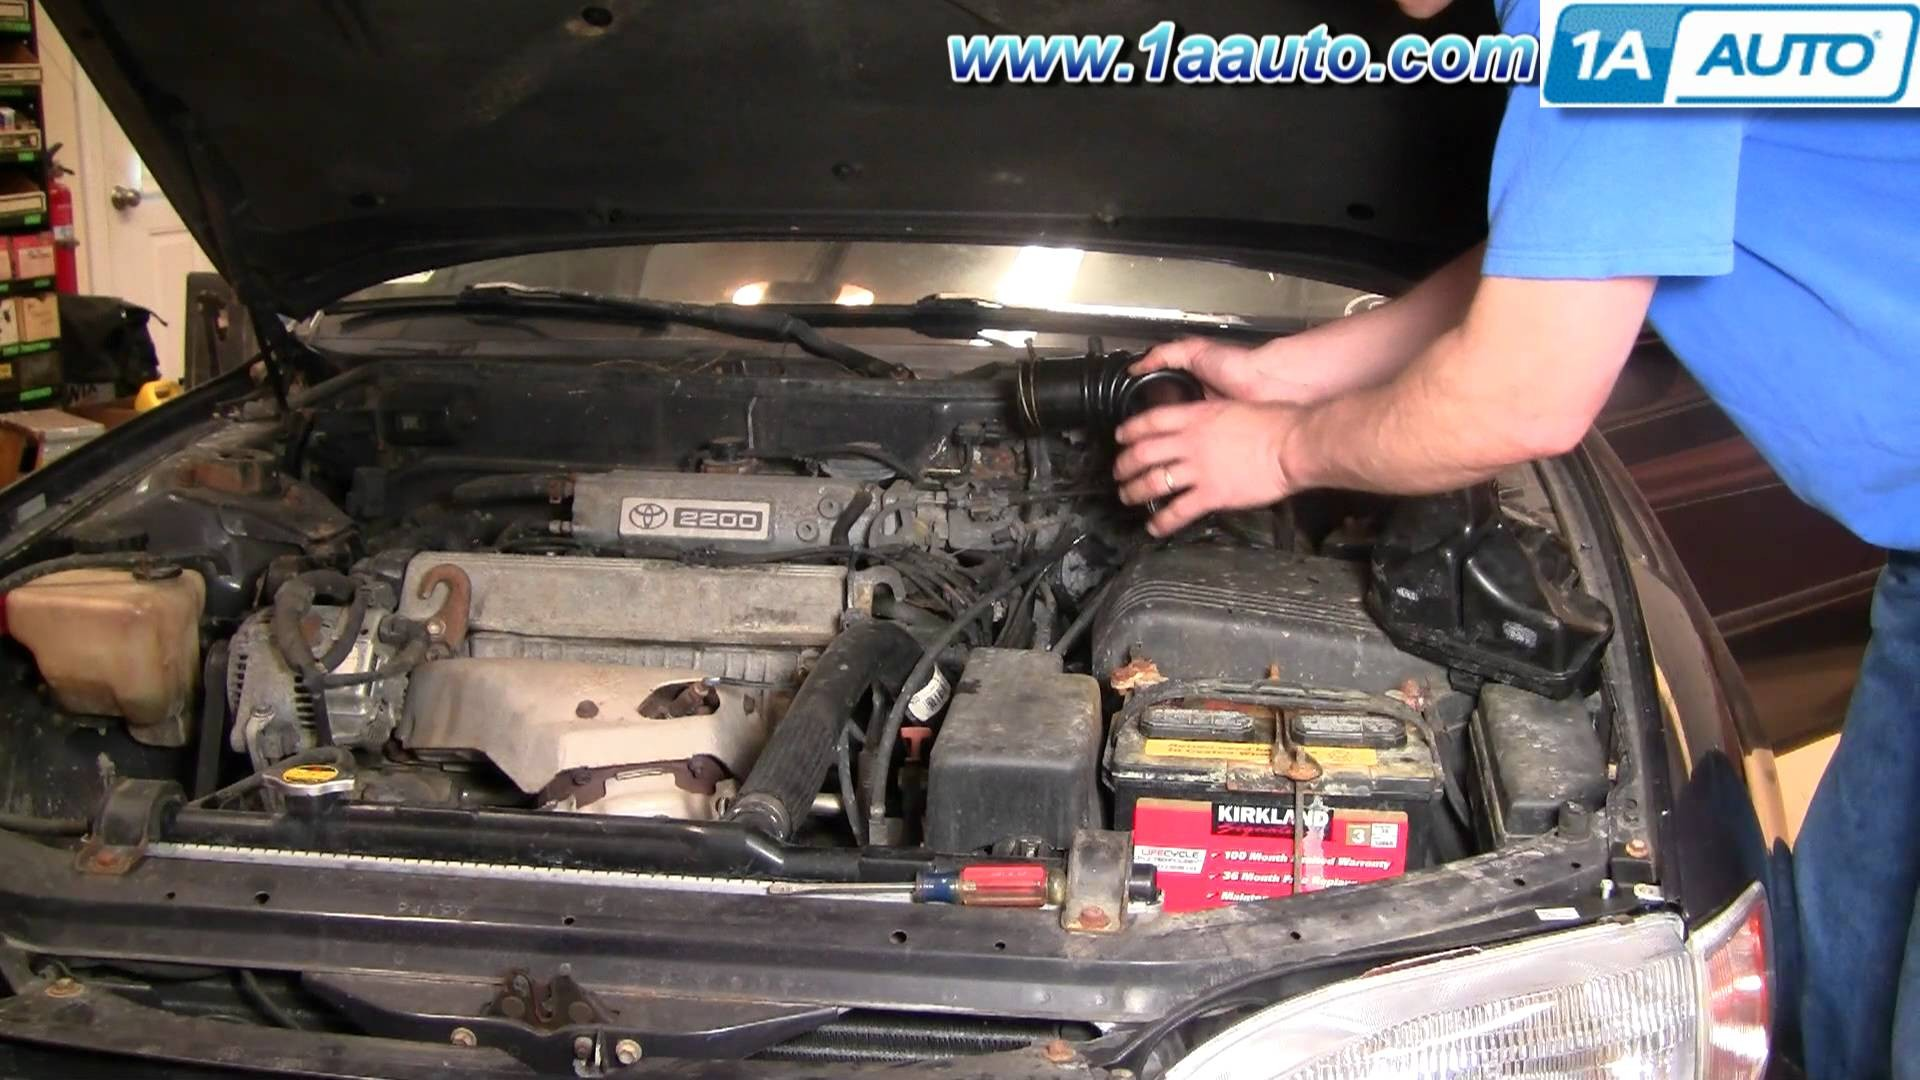 1996 toyota Camry 2 2 Engine Diagram How to Install Replace Engine Air Intake Hose toyota Camry 2 2l 95 Of 1996 toyota Camry 2 2 Engine Diagram